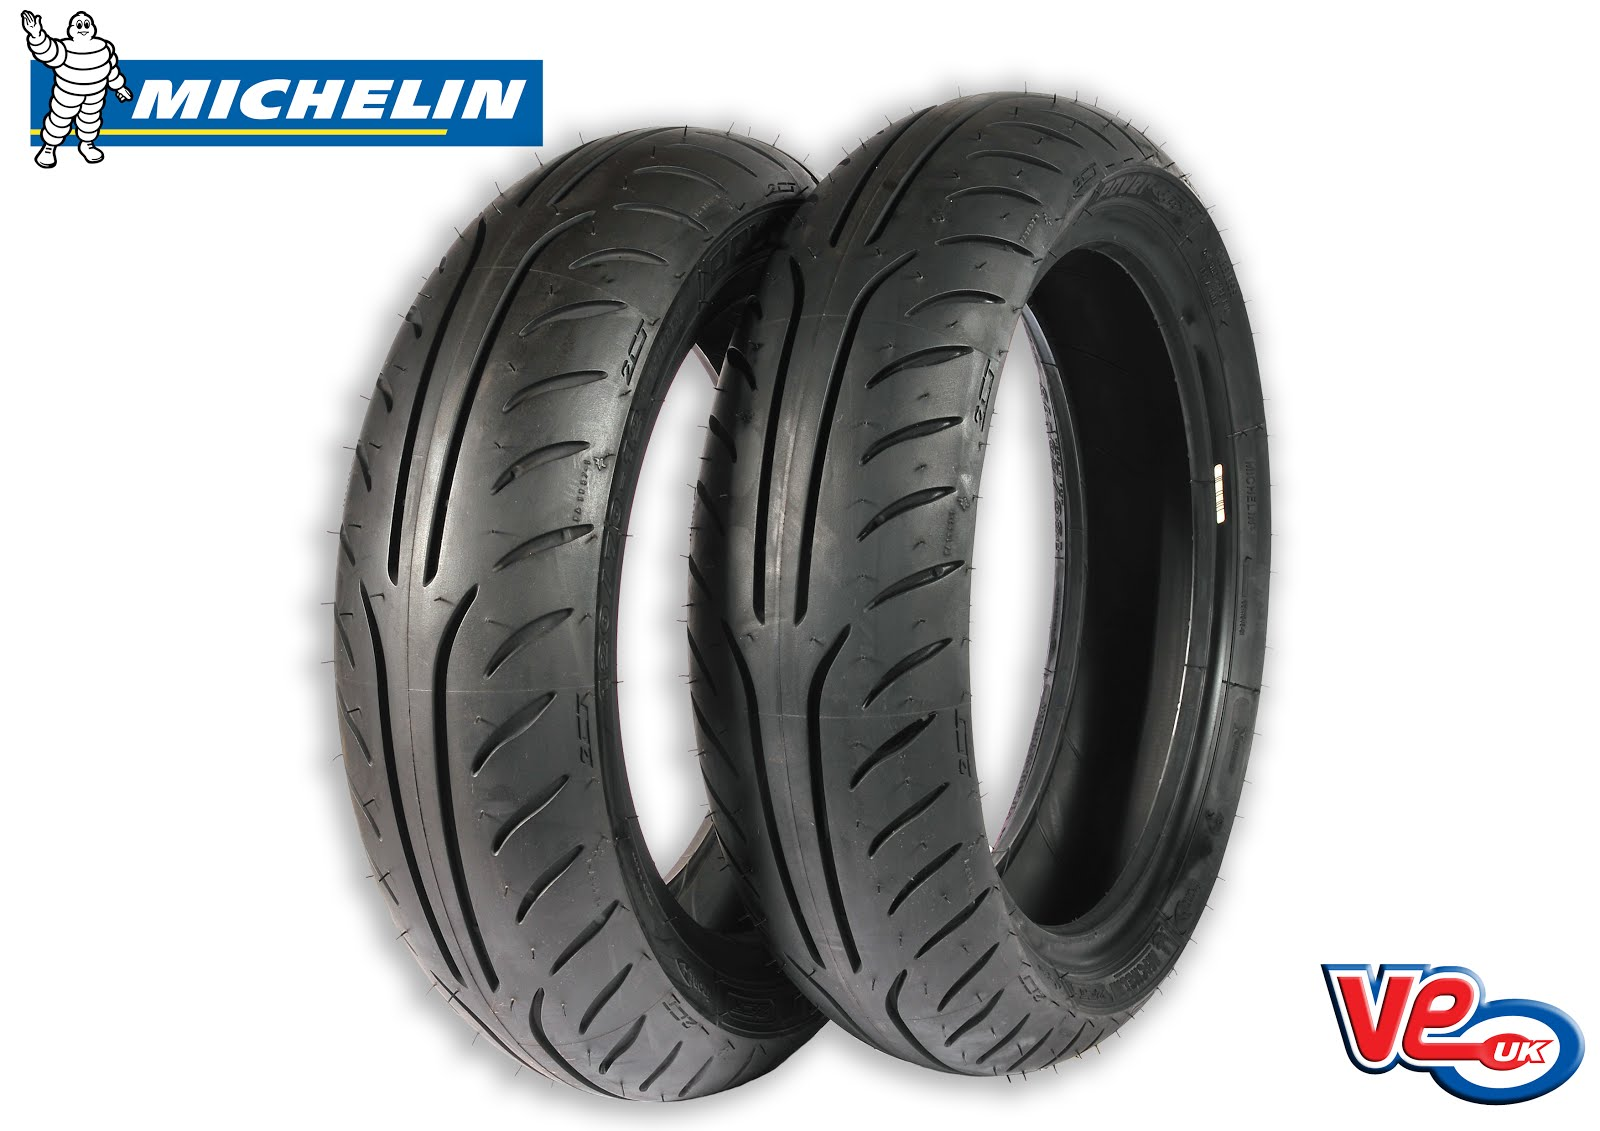 Michelin Power Pure Tyres